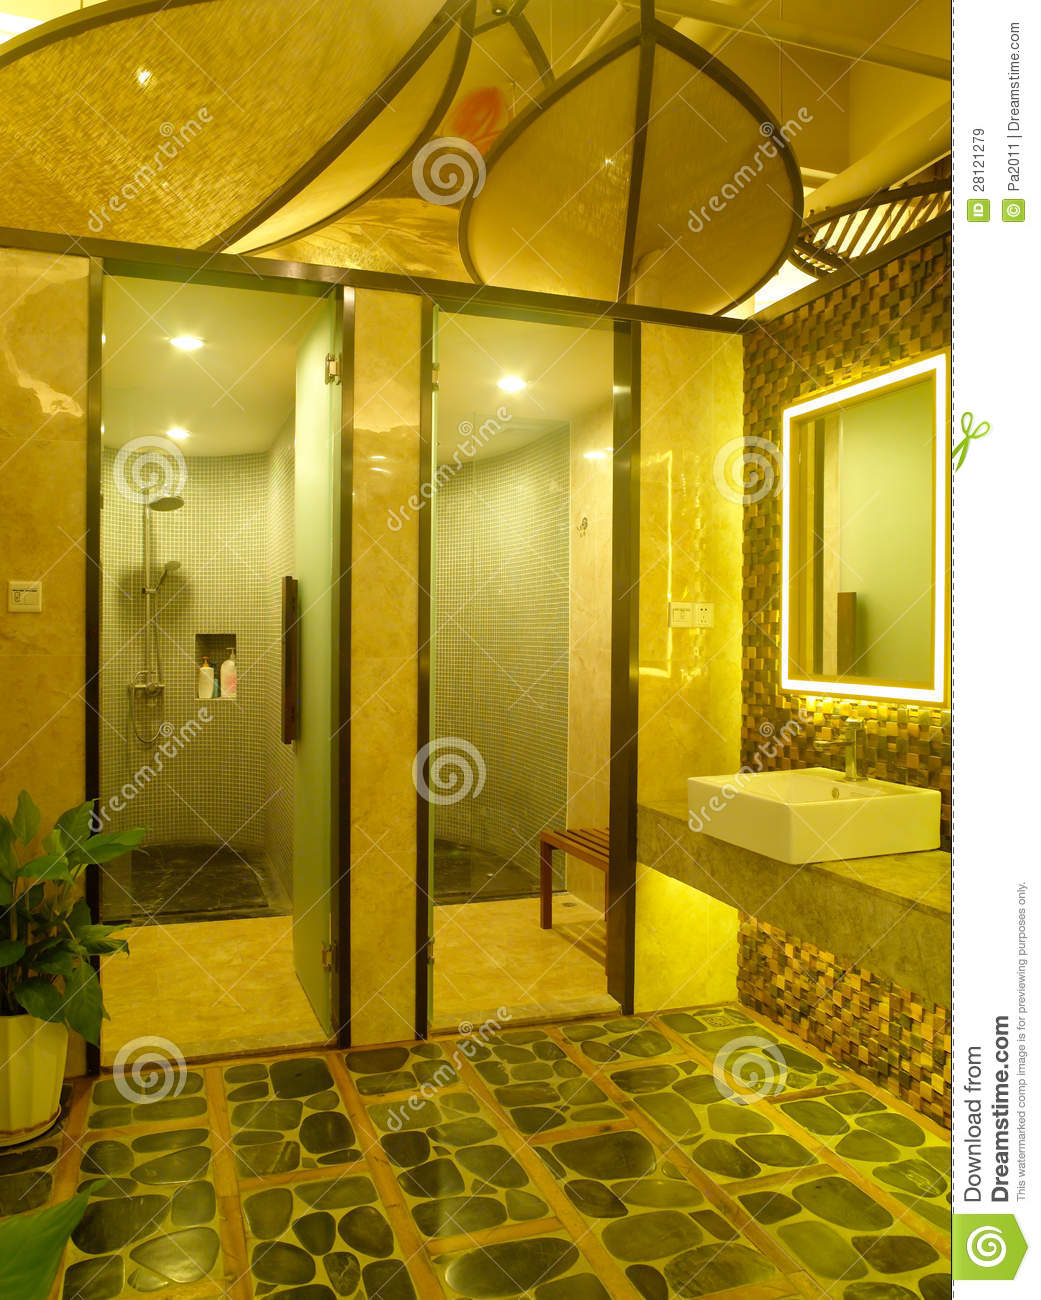 Royalty Free Stock Photo Bathroom Design Interior